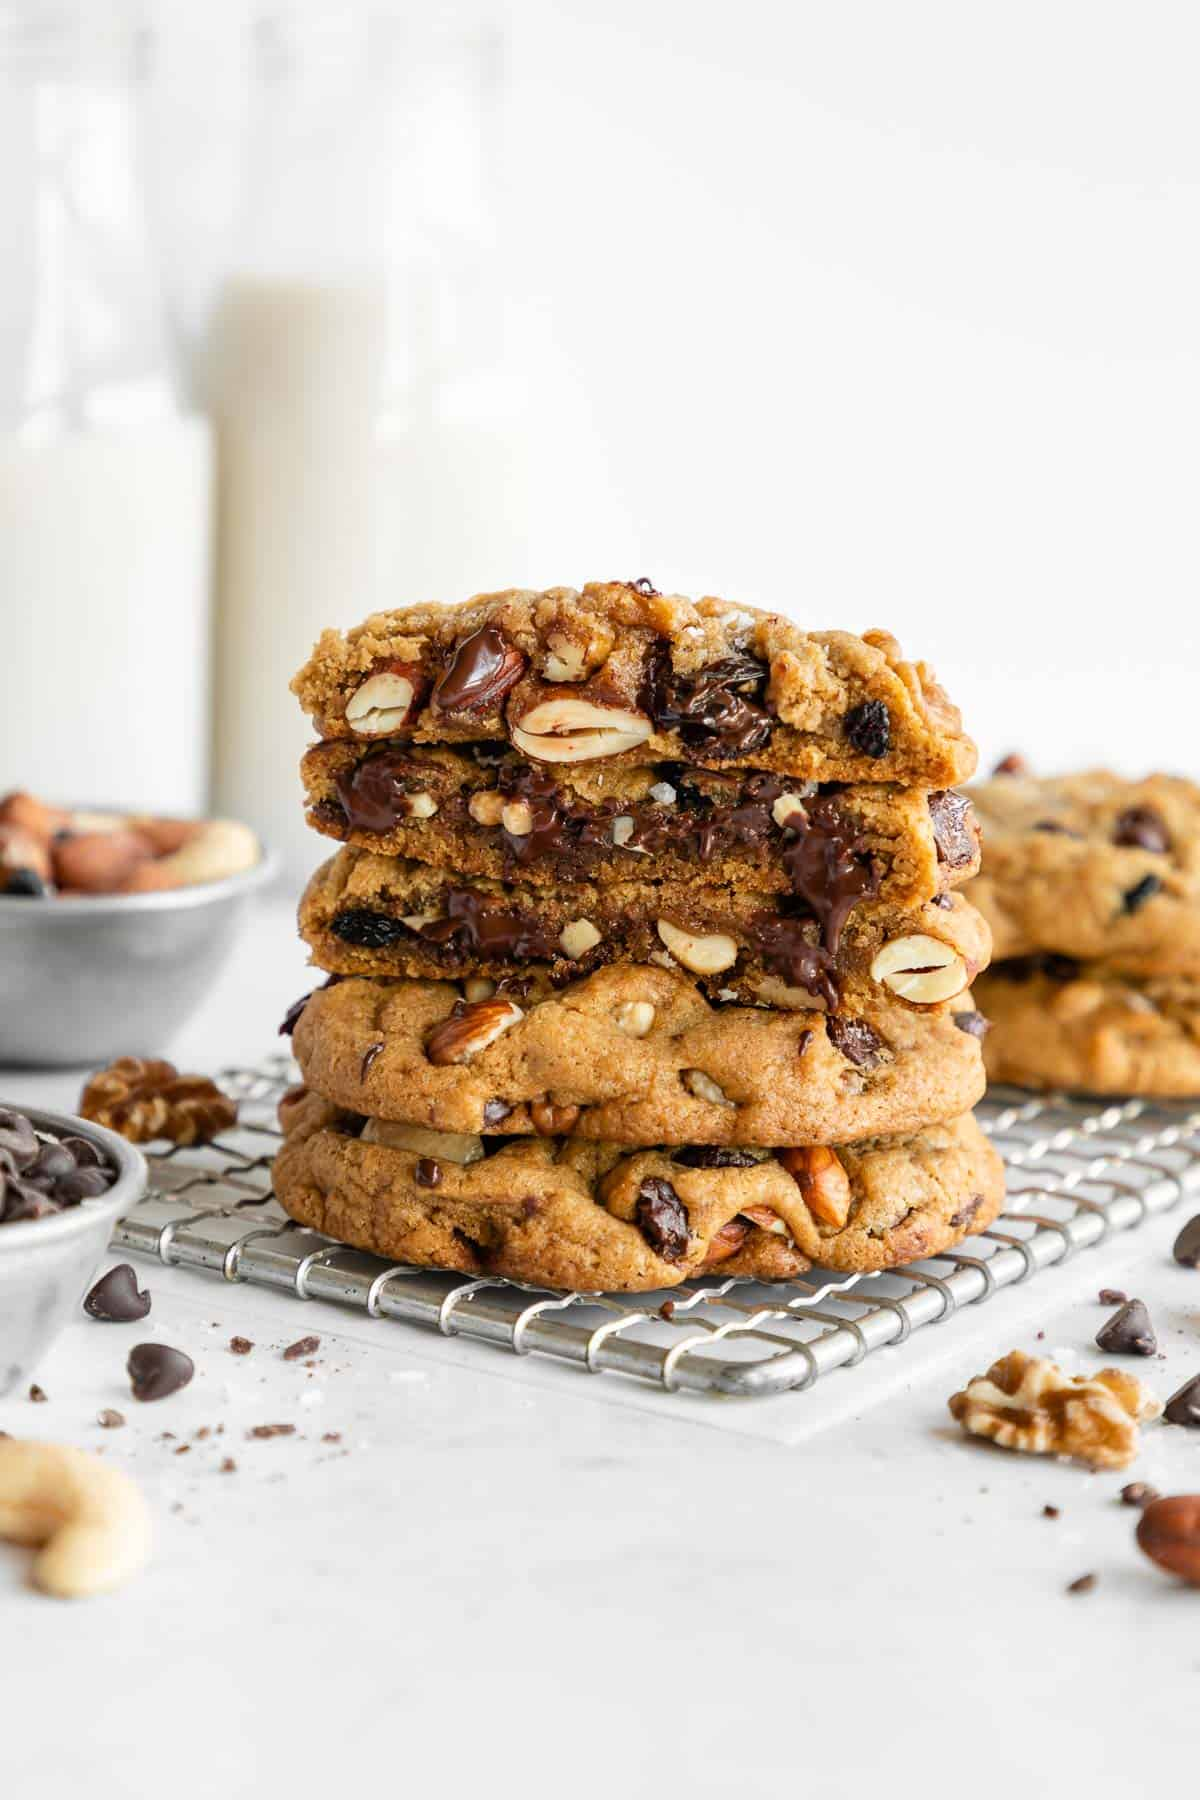 a stack of vegan trail mix cookies sliced in half on a cooling rack surrounded by chocolate chips, mixed nuts, and fruit